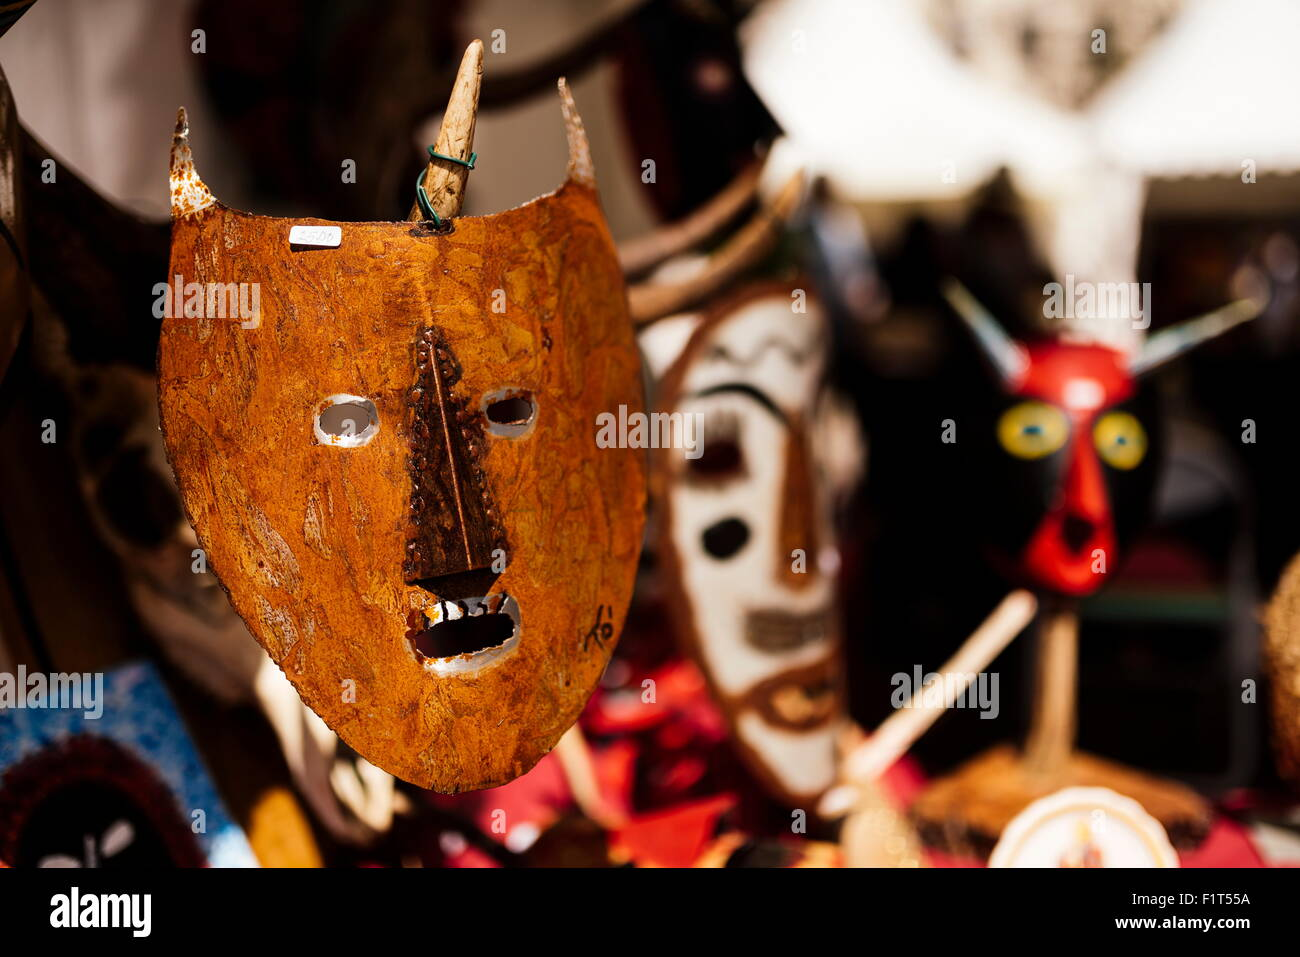 Traditional mask stall in Praca do Rossio, Lisbon, Portugal, Europe - Stock Image